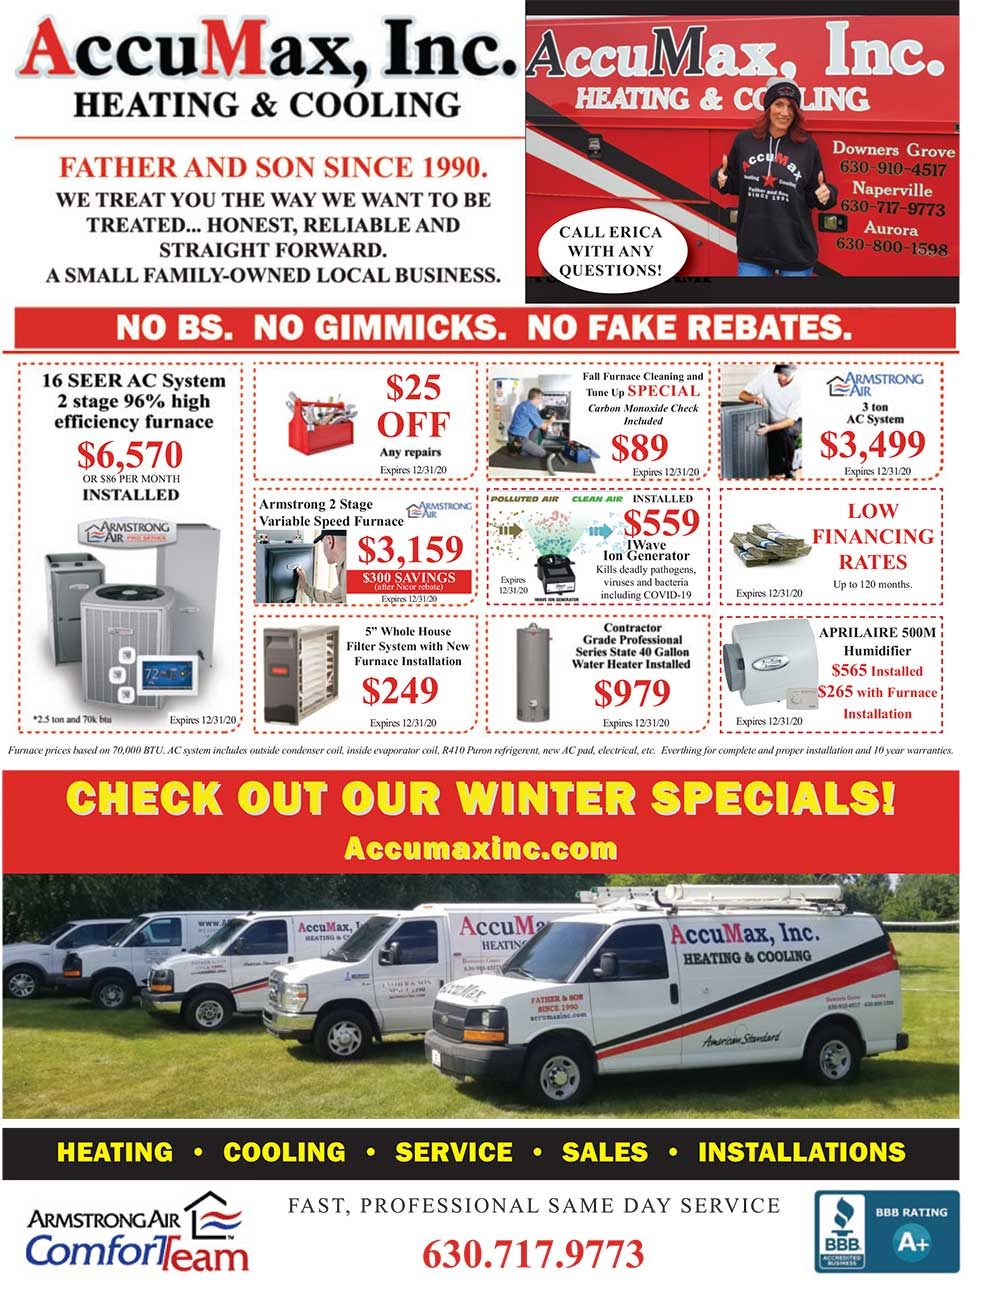 accumax-inc-coupon-heating-cooling-naperville-aurora-chicago-downers-grove-01